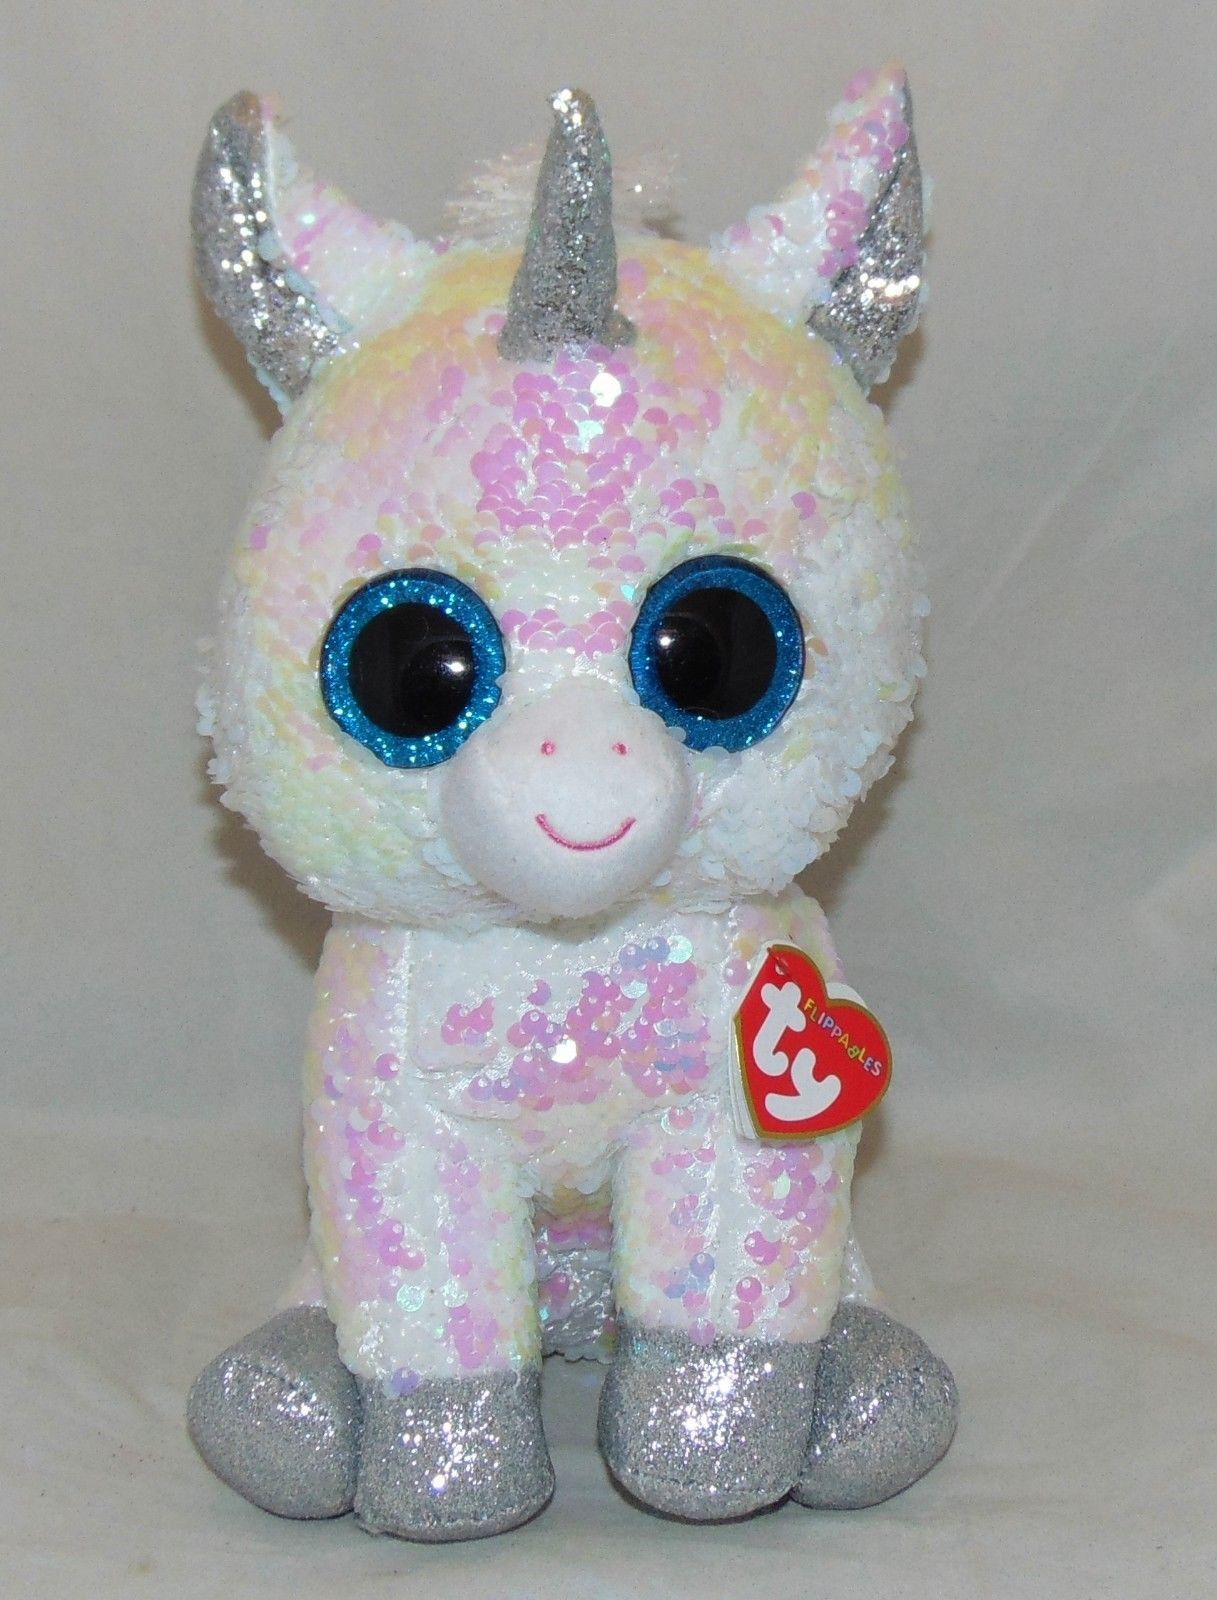 75c471776bd Ty Flippables Diamond Unicorn Color Changing Sequins Medium 9 Htf -  BUY IT  NOW ONLY   16.99 on  eBay  flippables  diamond  unicorn  color  changing ...